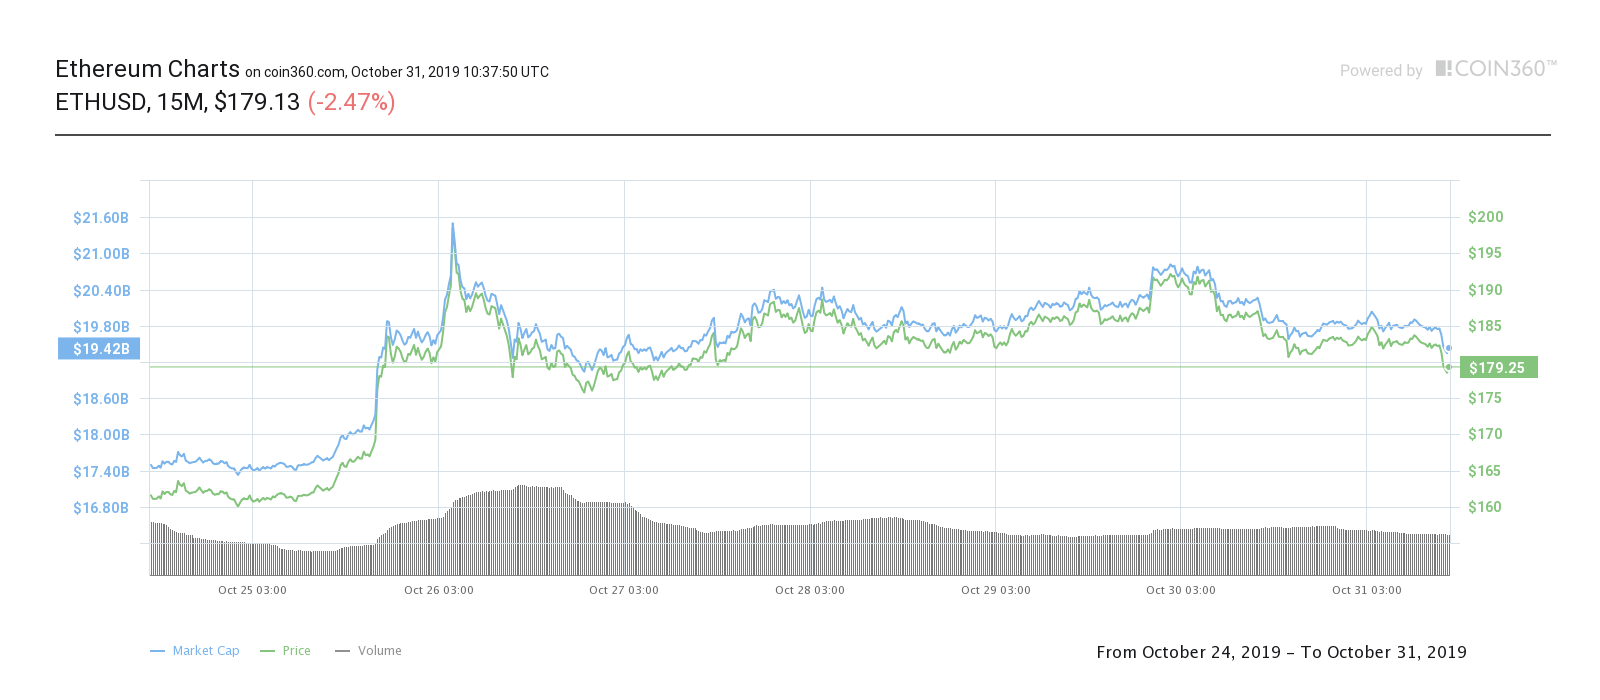 Ether seven-day price chart